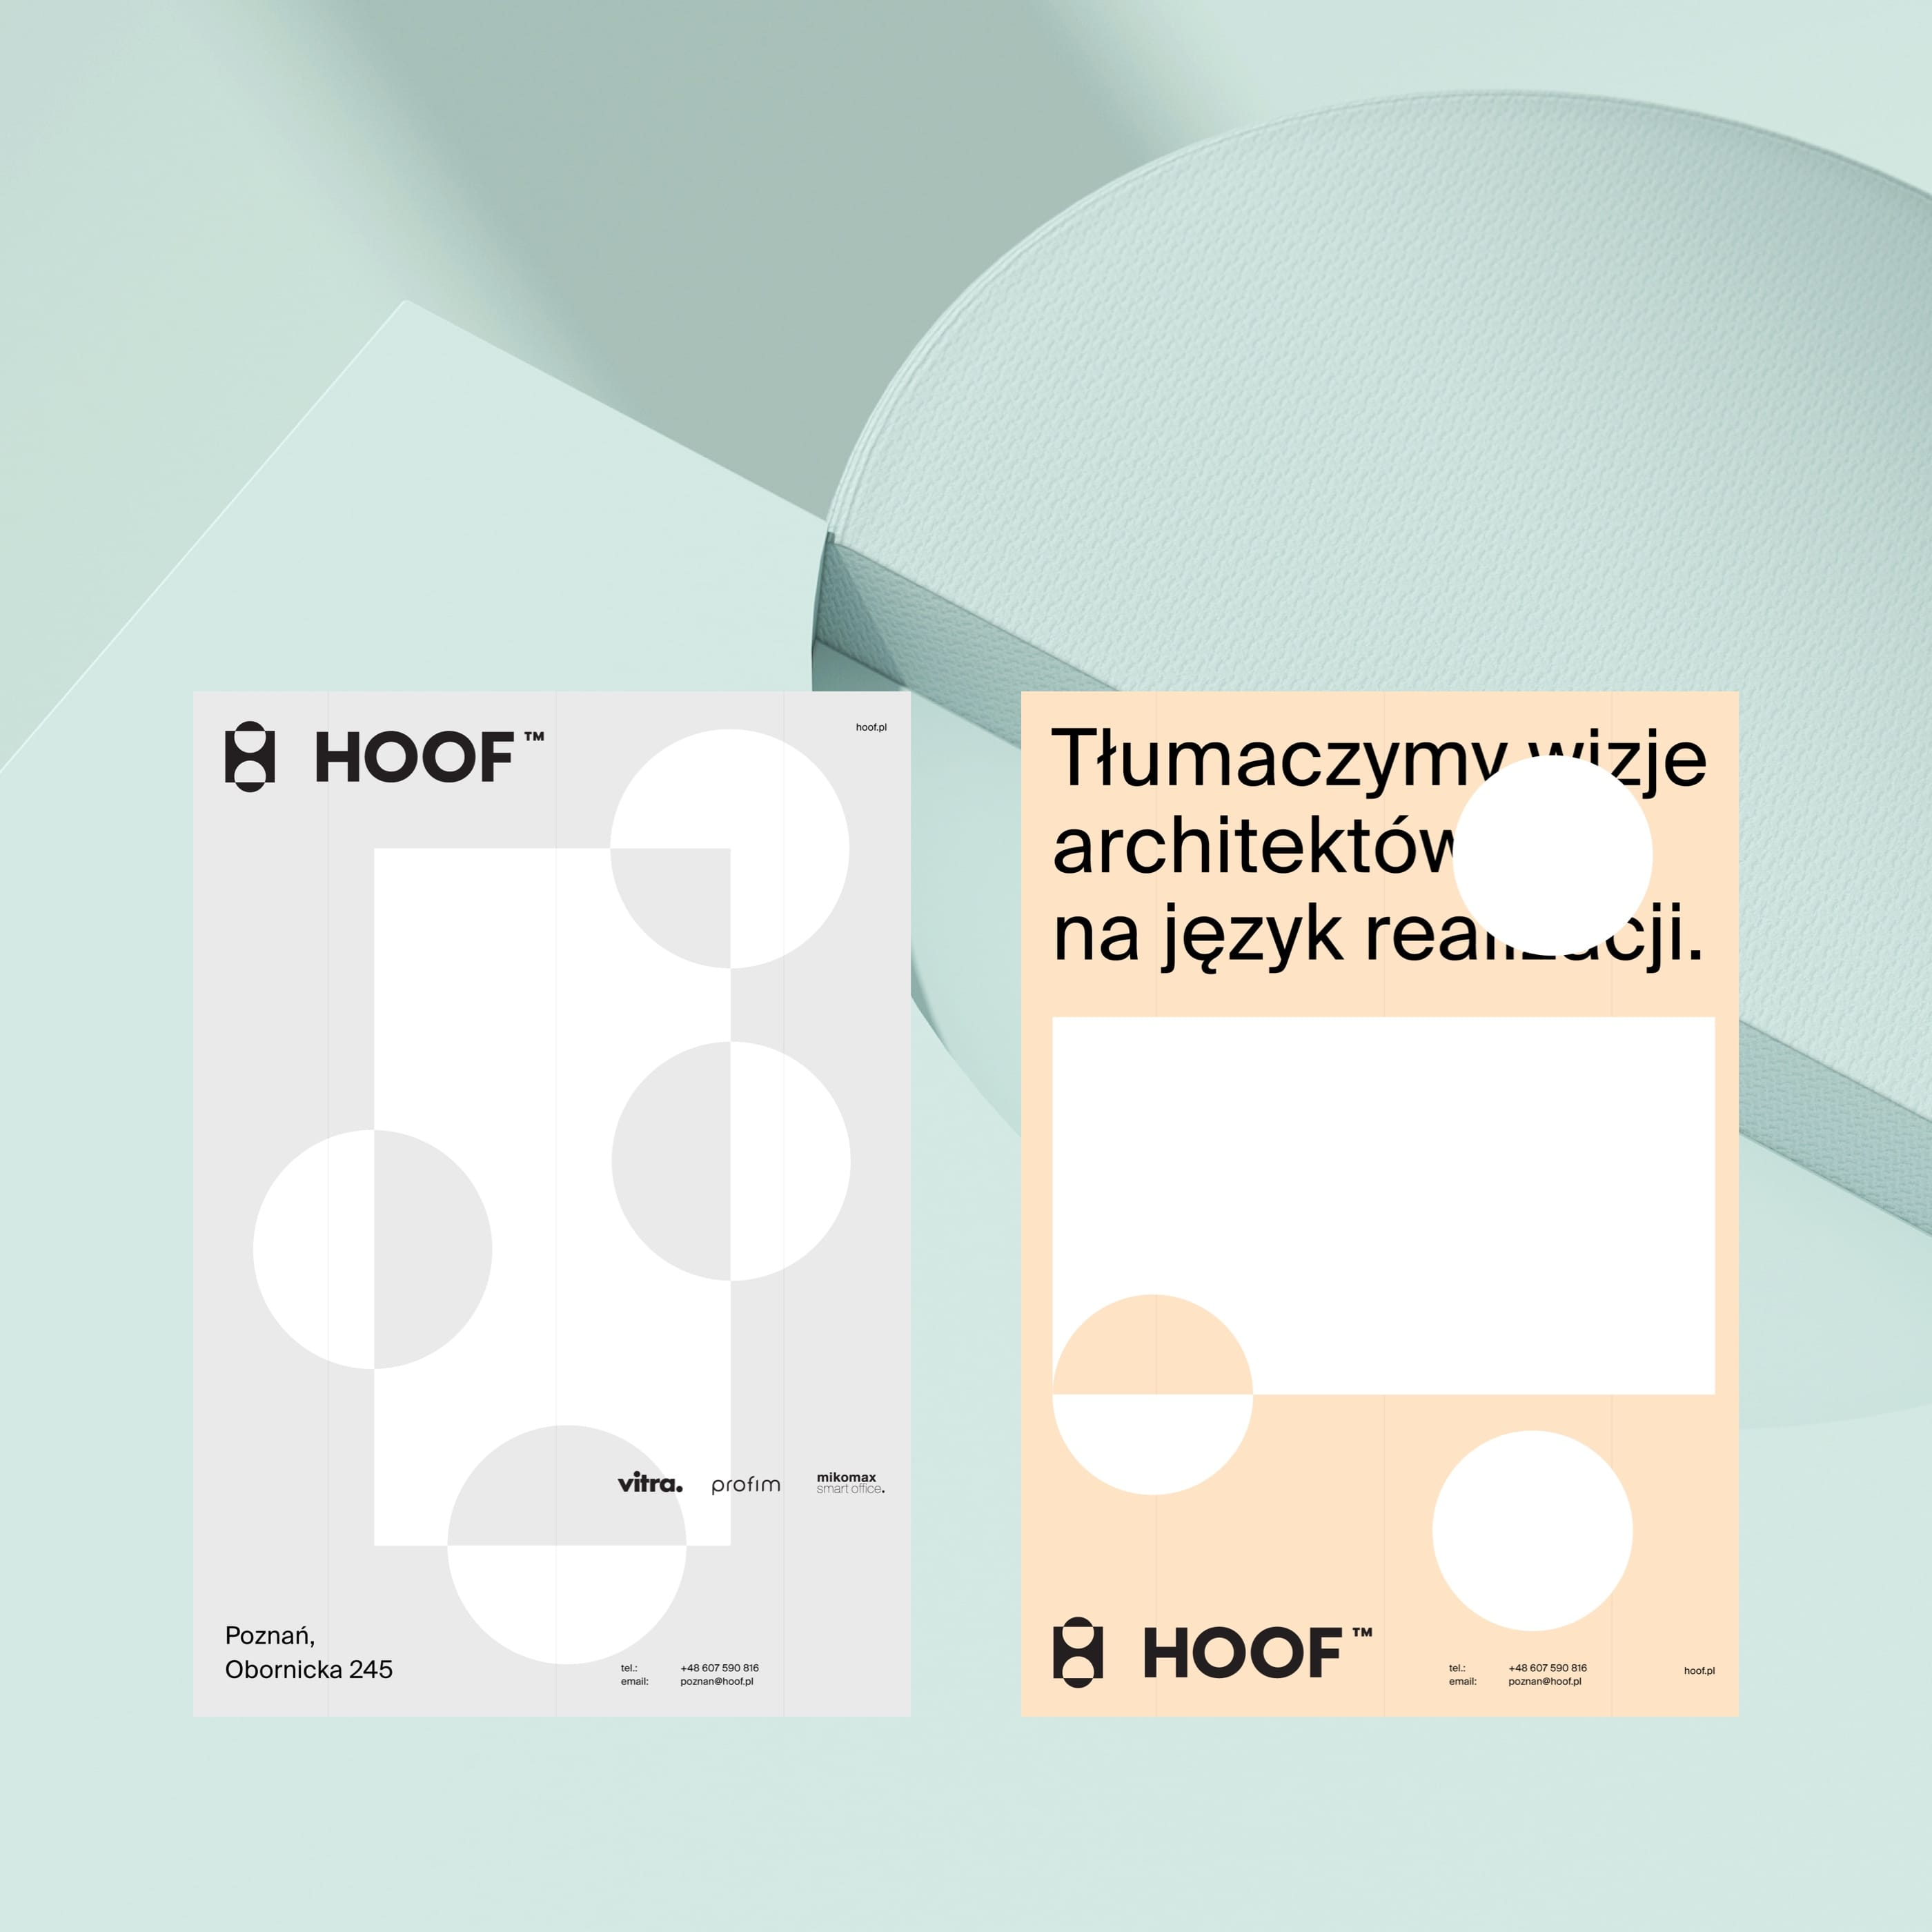 Business cards - Folia Scandinavica Posnaniensia